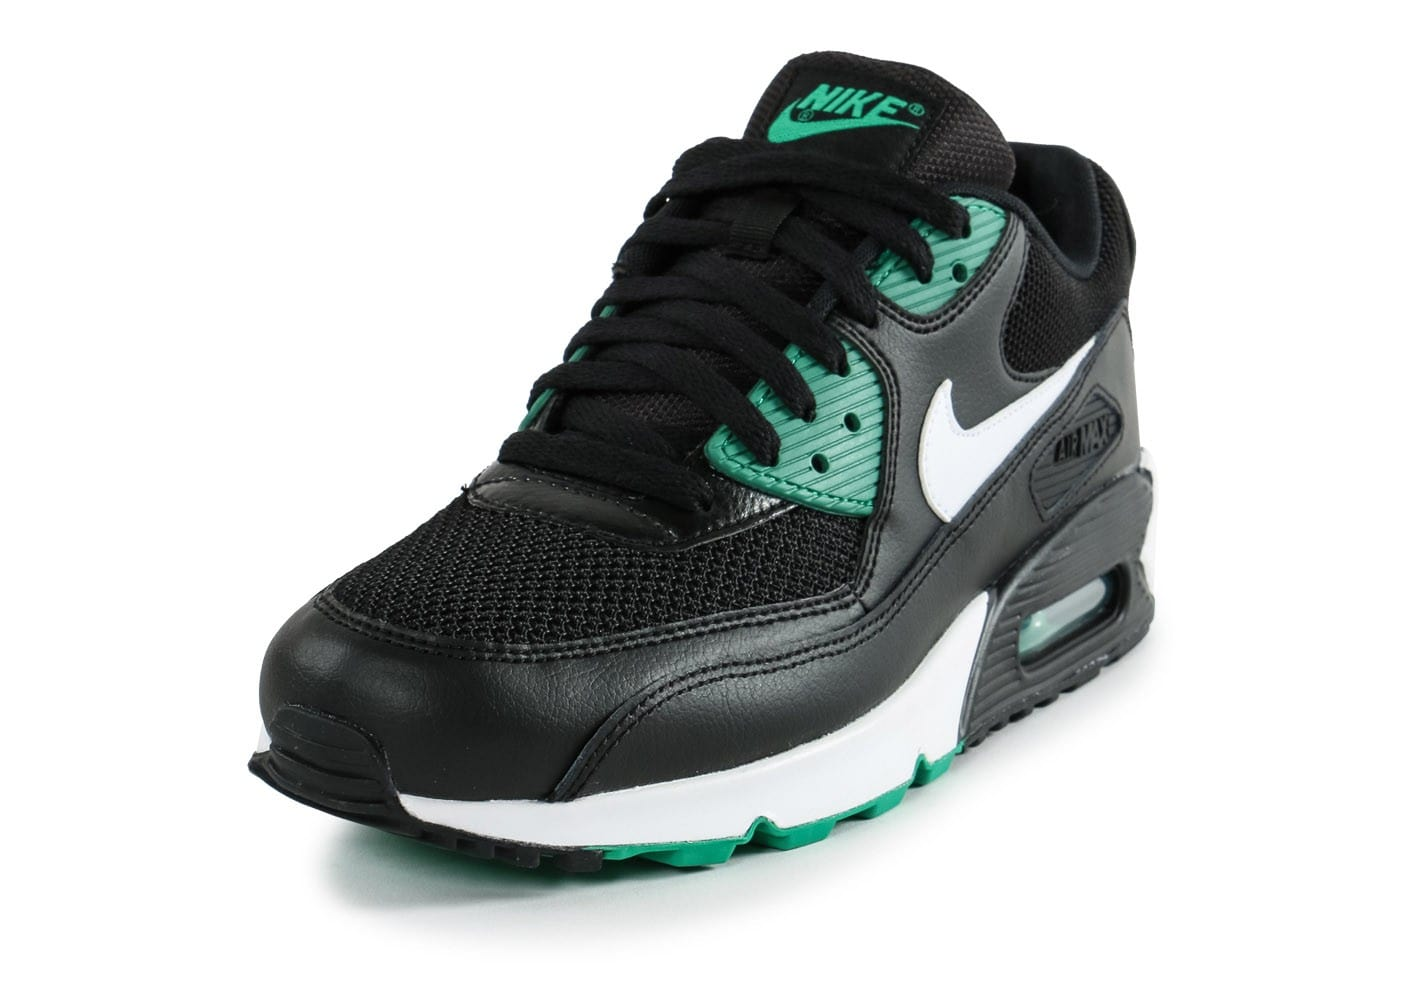 nike air max 90 noir et verte. Black Bedroom Furniture Sets. Home Design Ideas